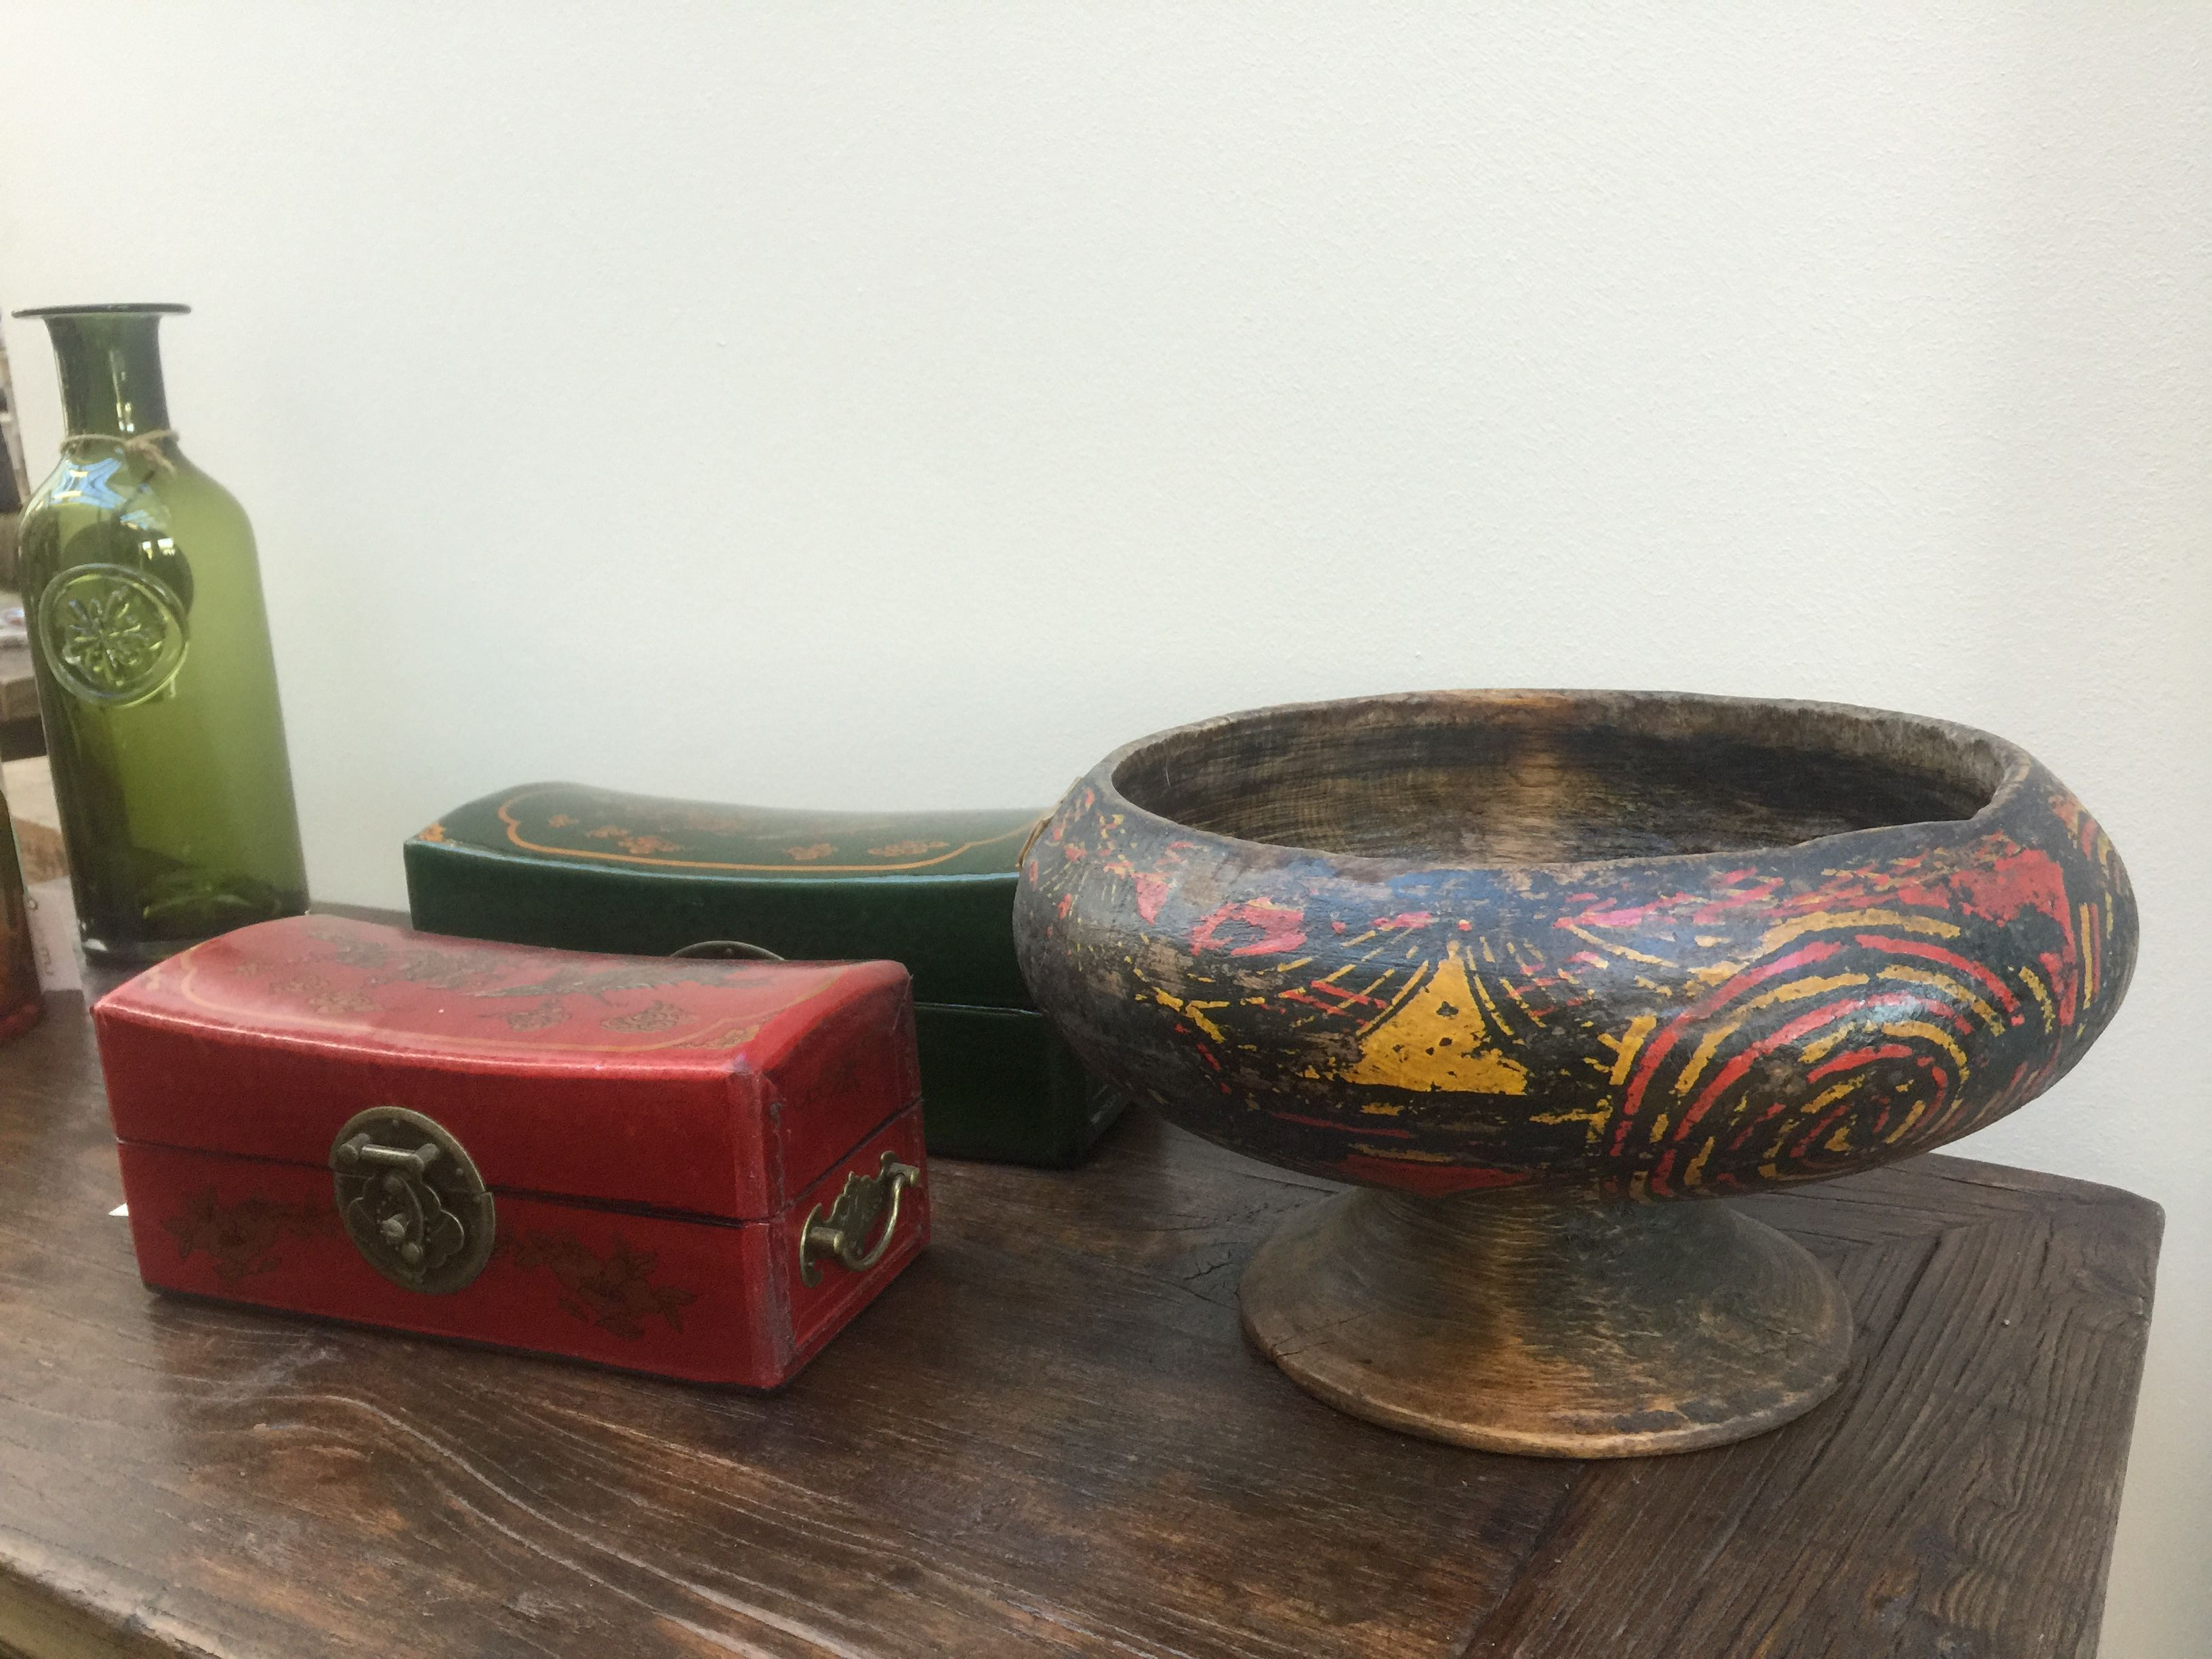 Chinese pillow boxes and antique bowl 明清家具 pinterest